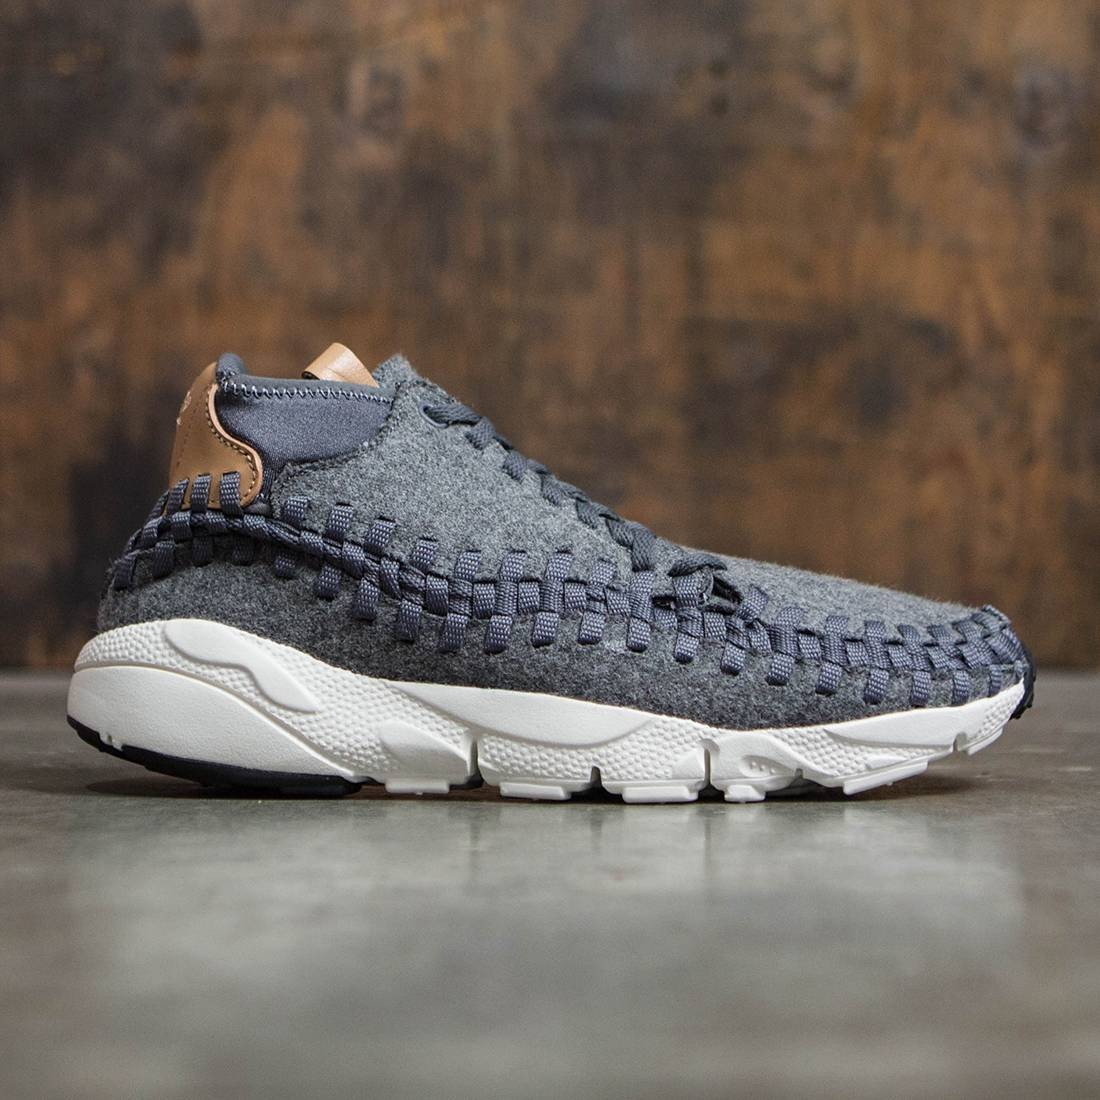 b7a56125b2e1 Nike Men Air Footscape Woven Chukka Se (grey   dark grey   sail-vachetta tan-canyon  grey)